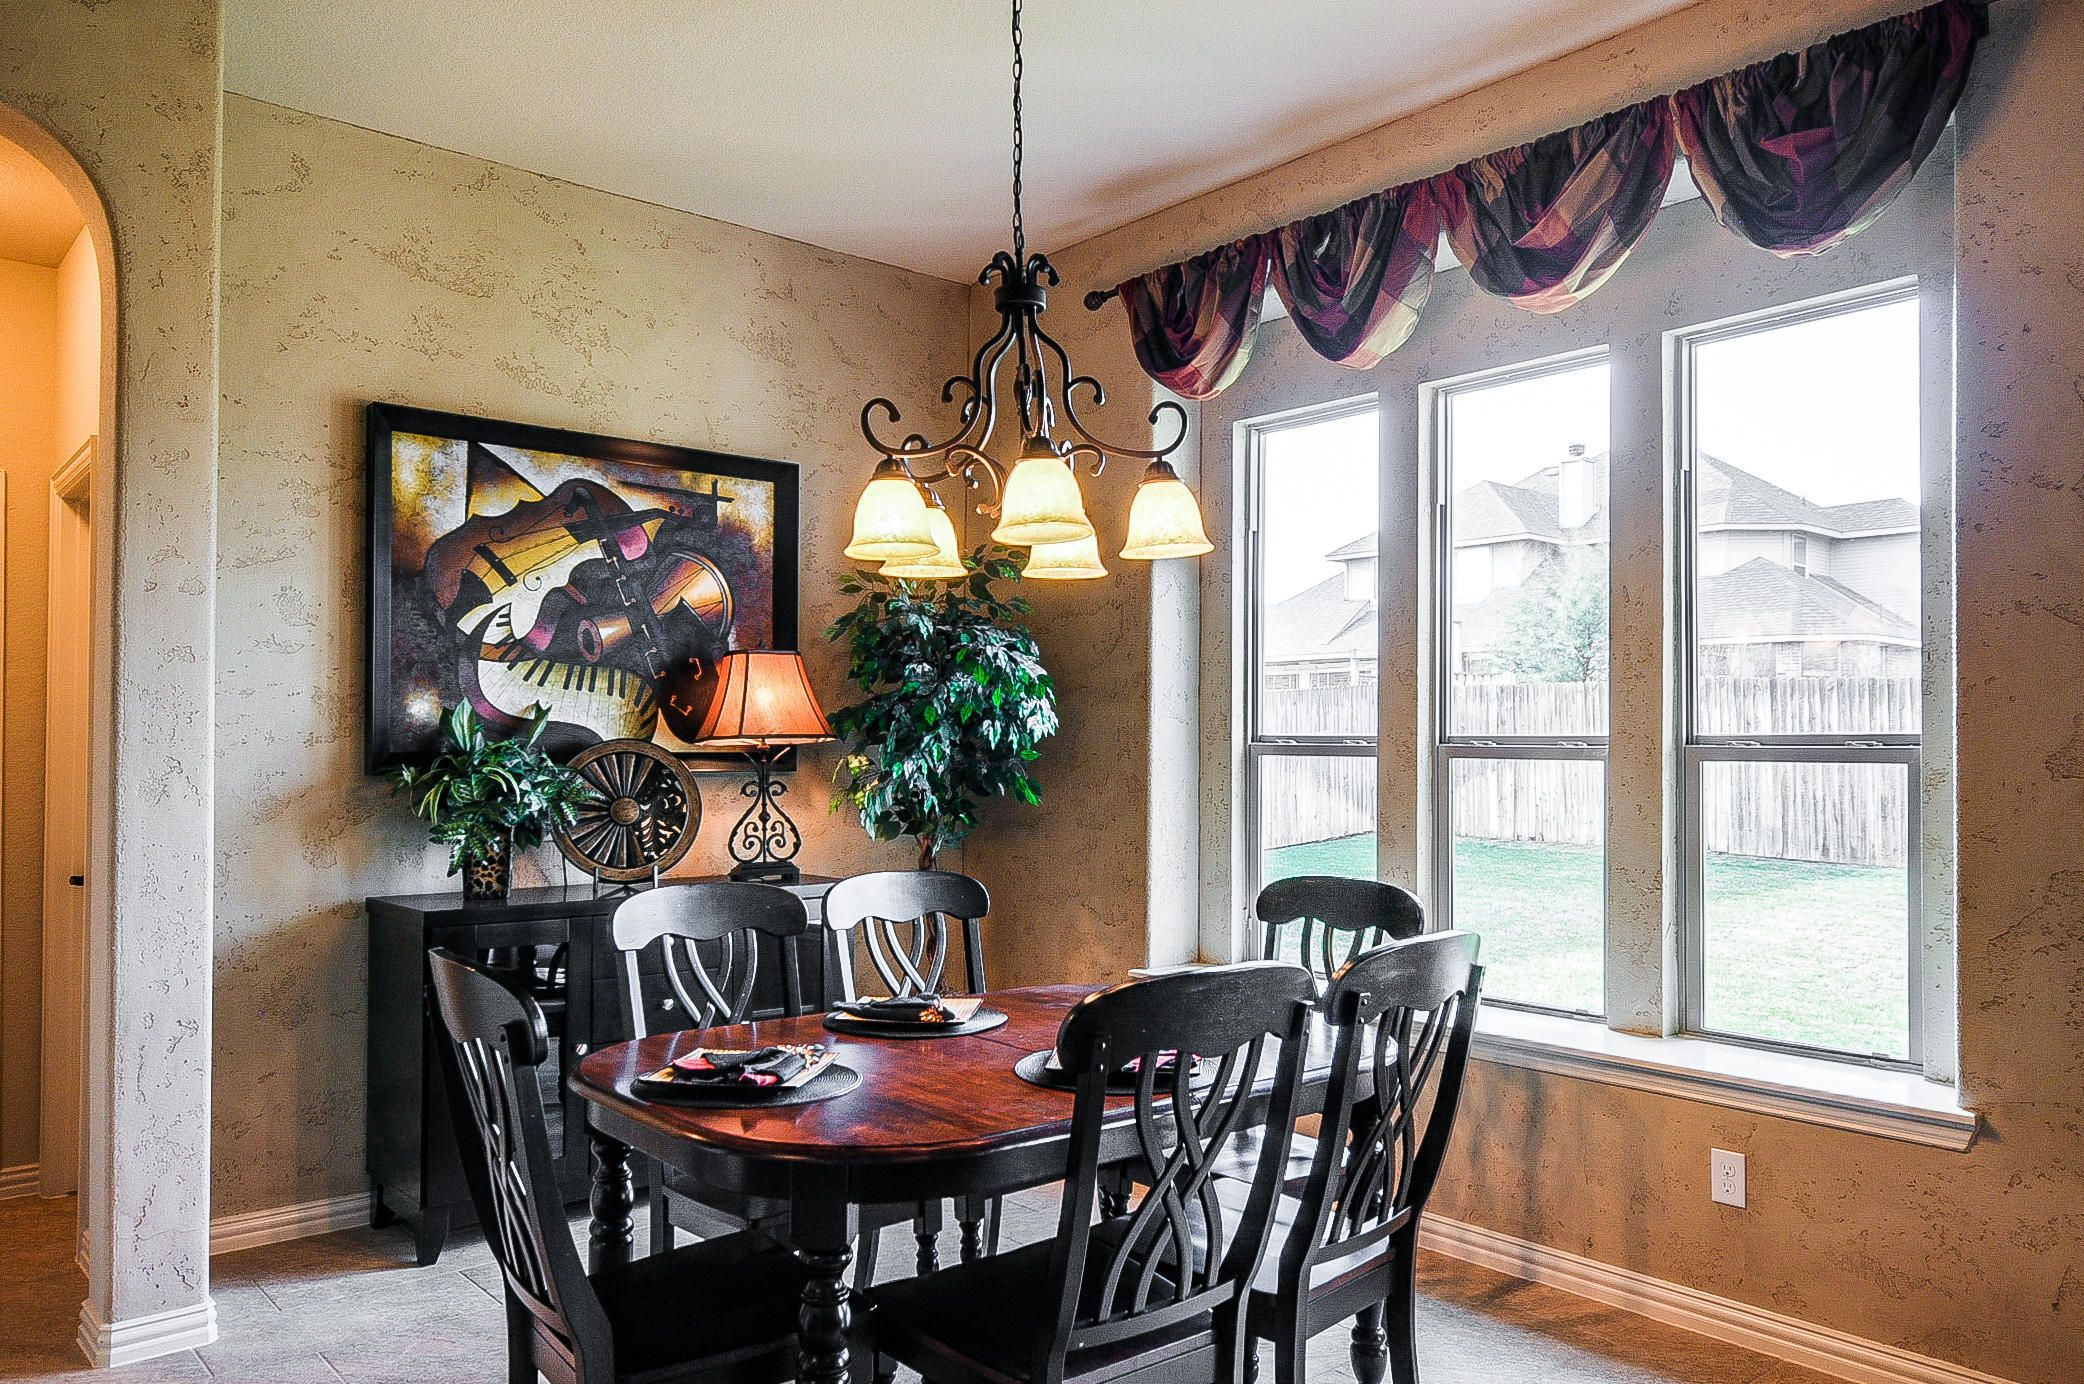 lillian custom homes is currently offering elegant and affordable 2